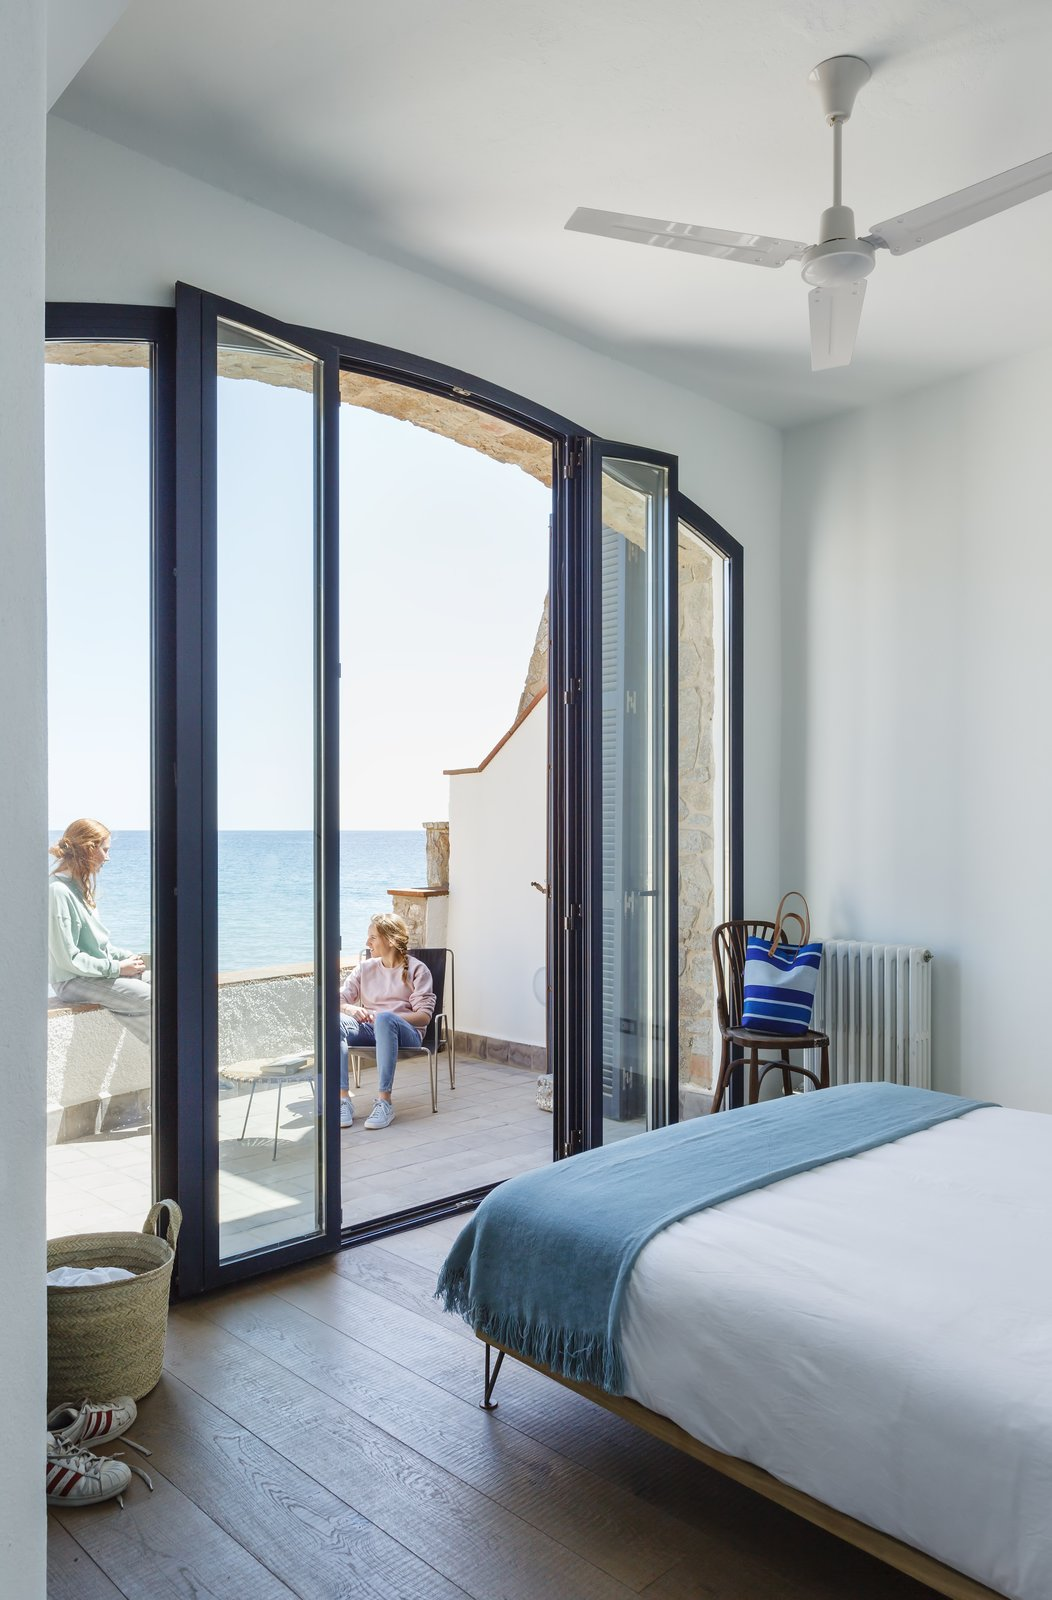 Photo 11 of 16 in A Careful Renovation Brings New Life to a Family's Heritage Home on the Spanish Coast